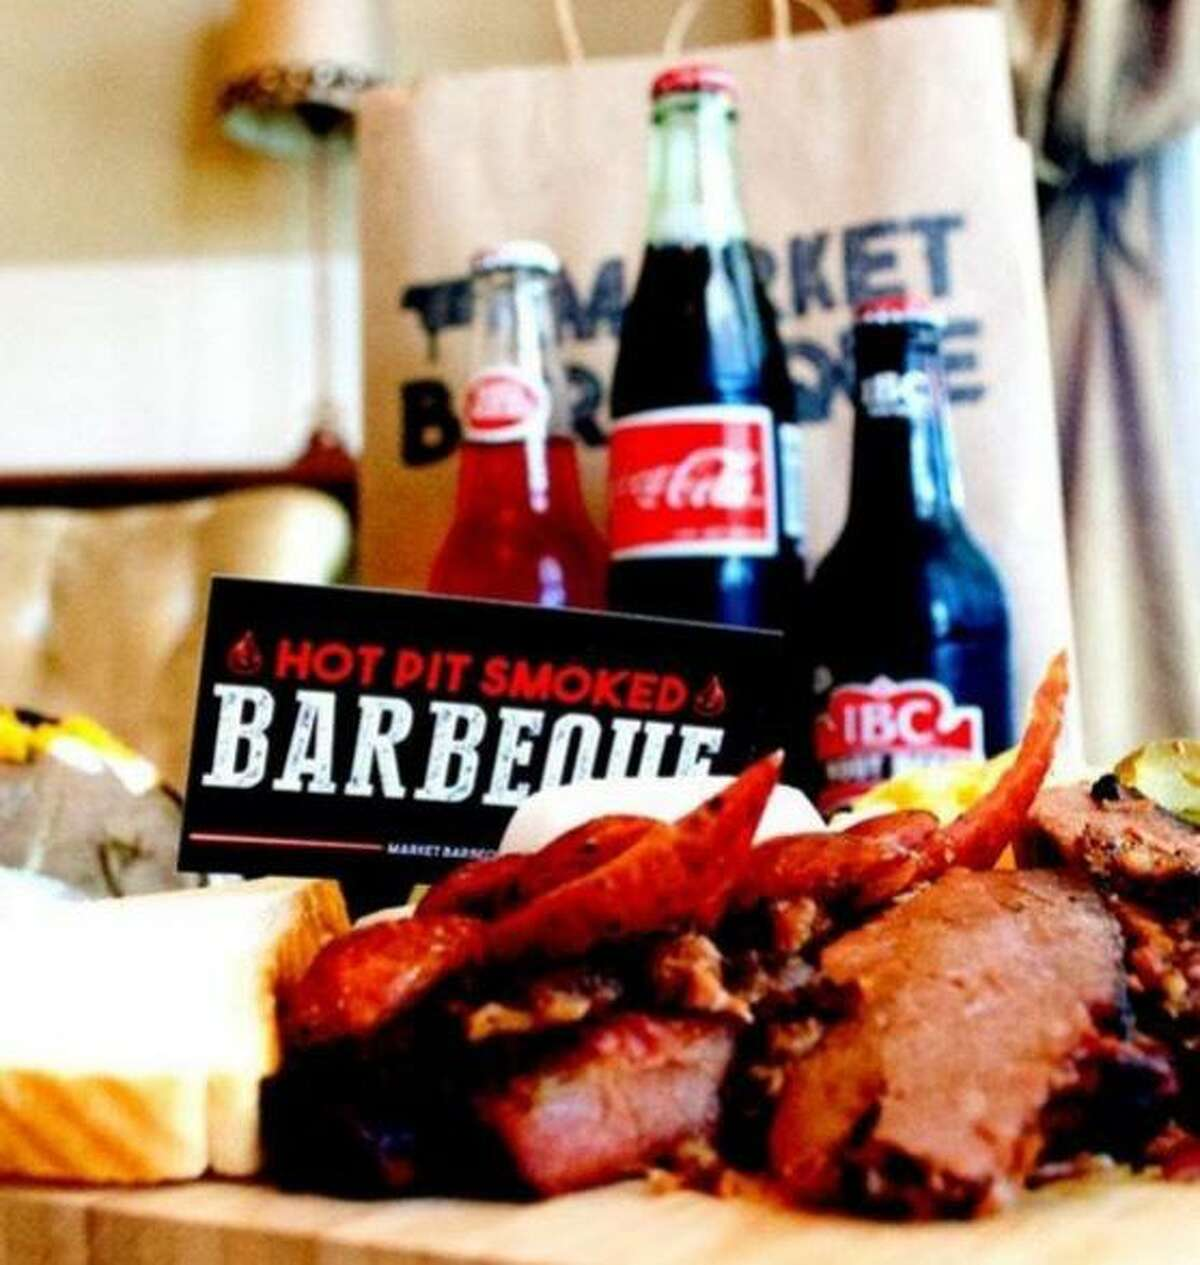 Hoppin' John owners April Carter and Guillermo Galvan will open Market Barbecue near the Brooks development in October.